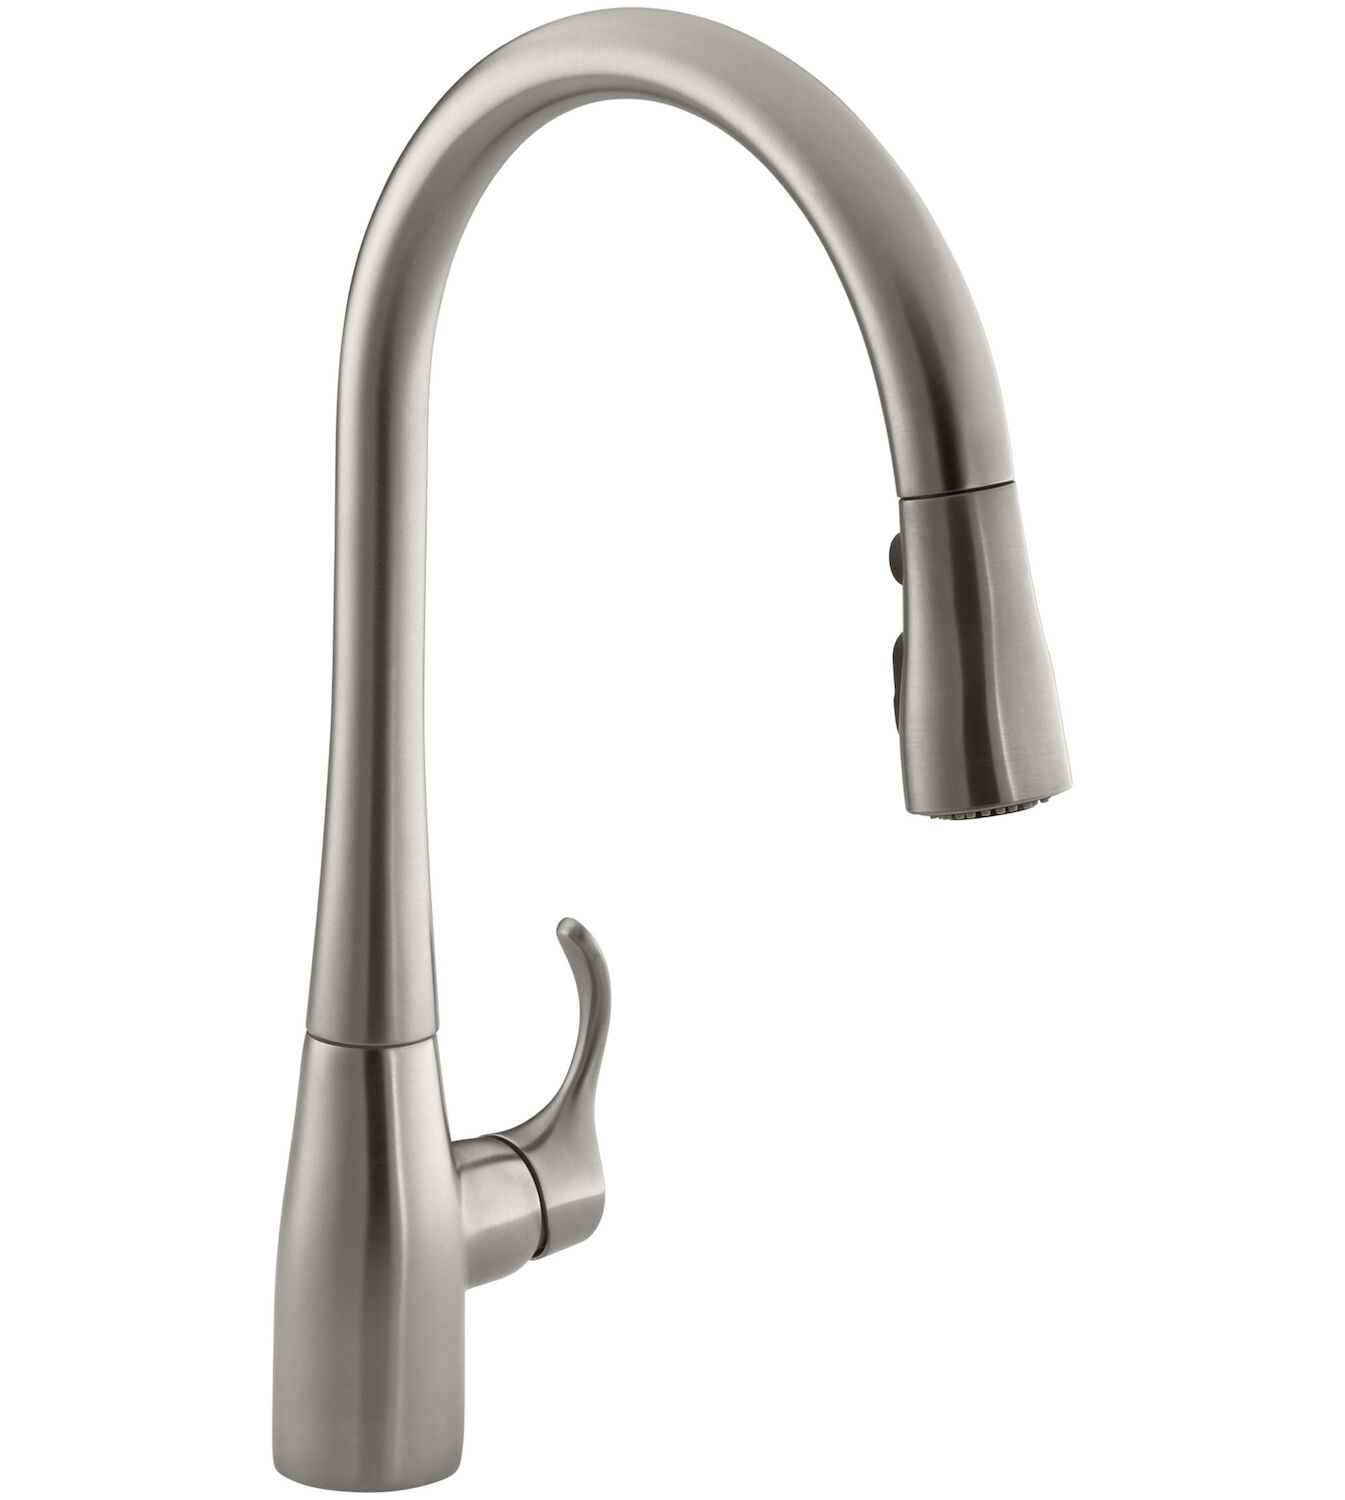 simplice r single hole or three hole kitchen sink faucet with 16 5 8 inch pull down spout docknetik r magnetic docking system and a 3 function